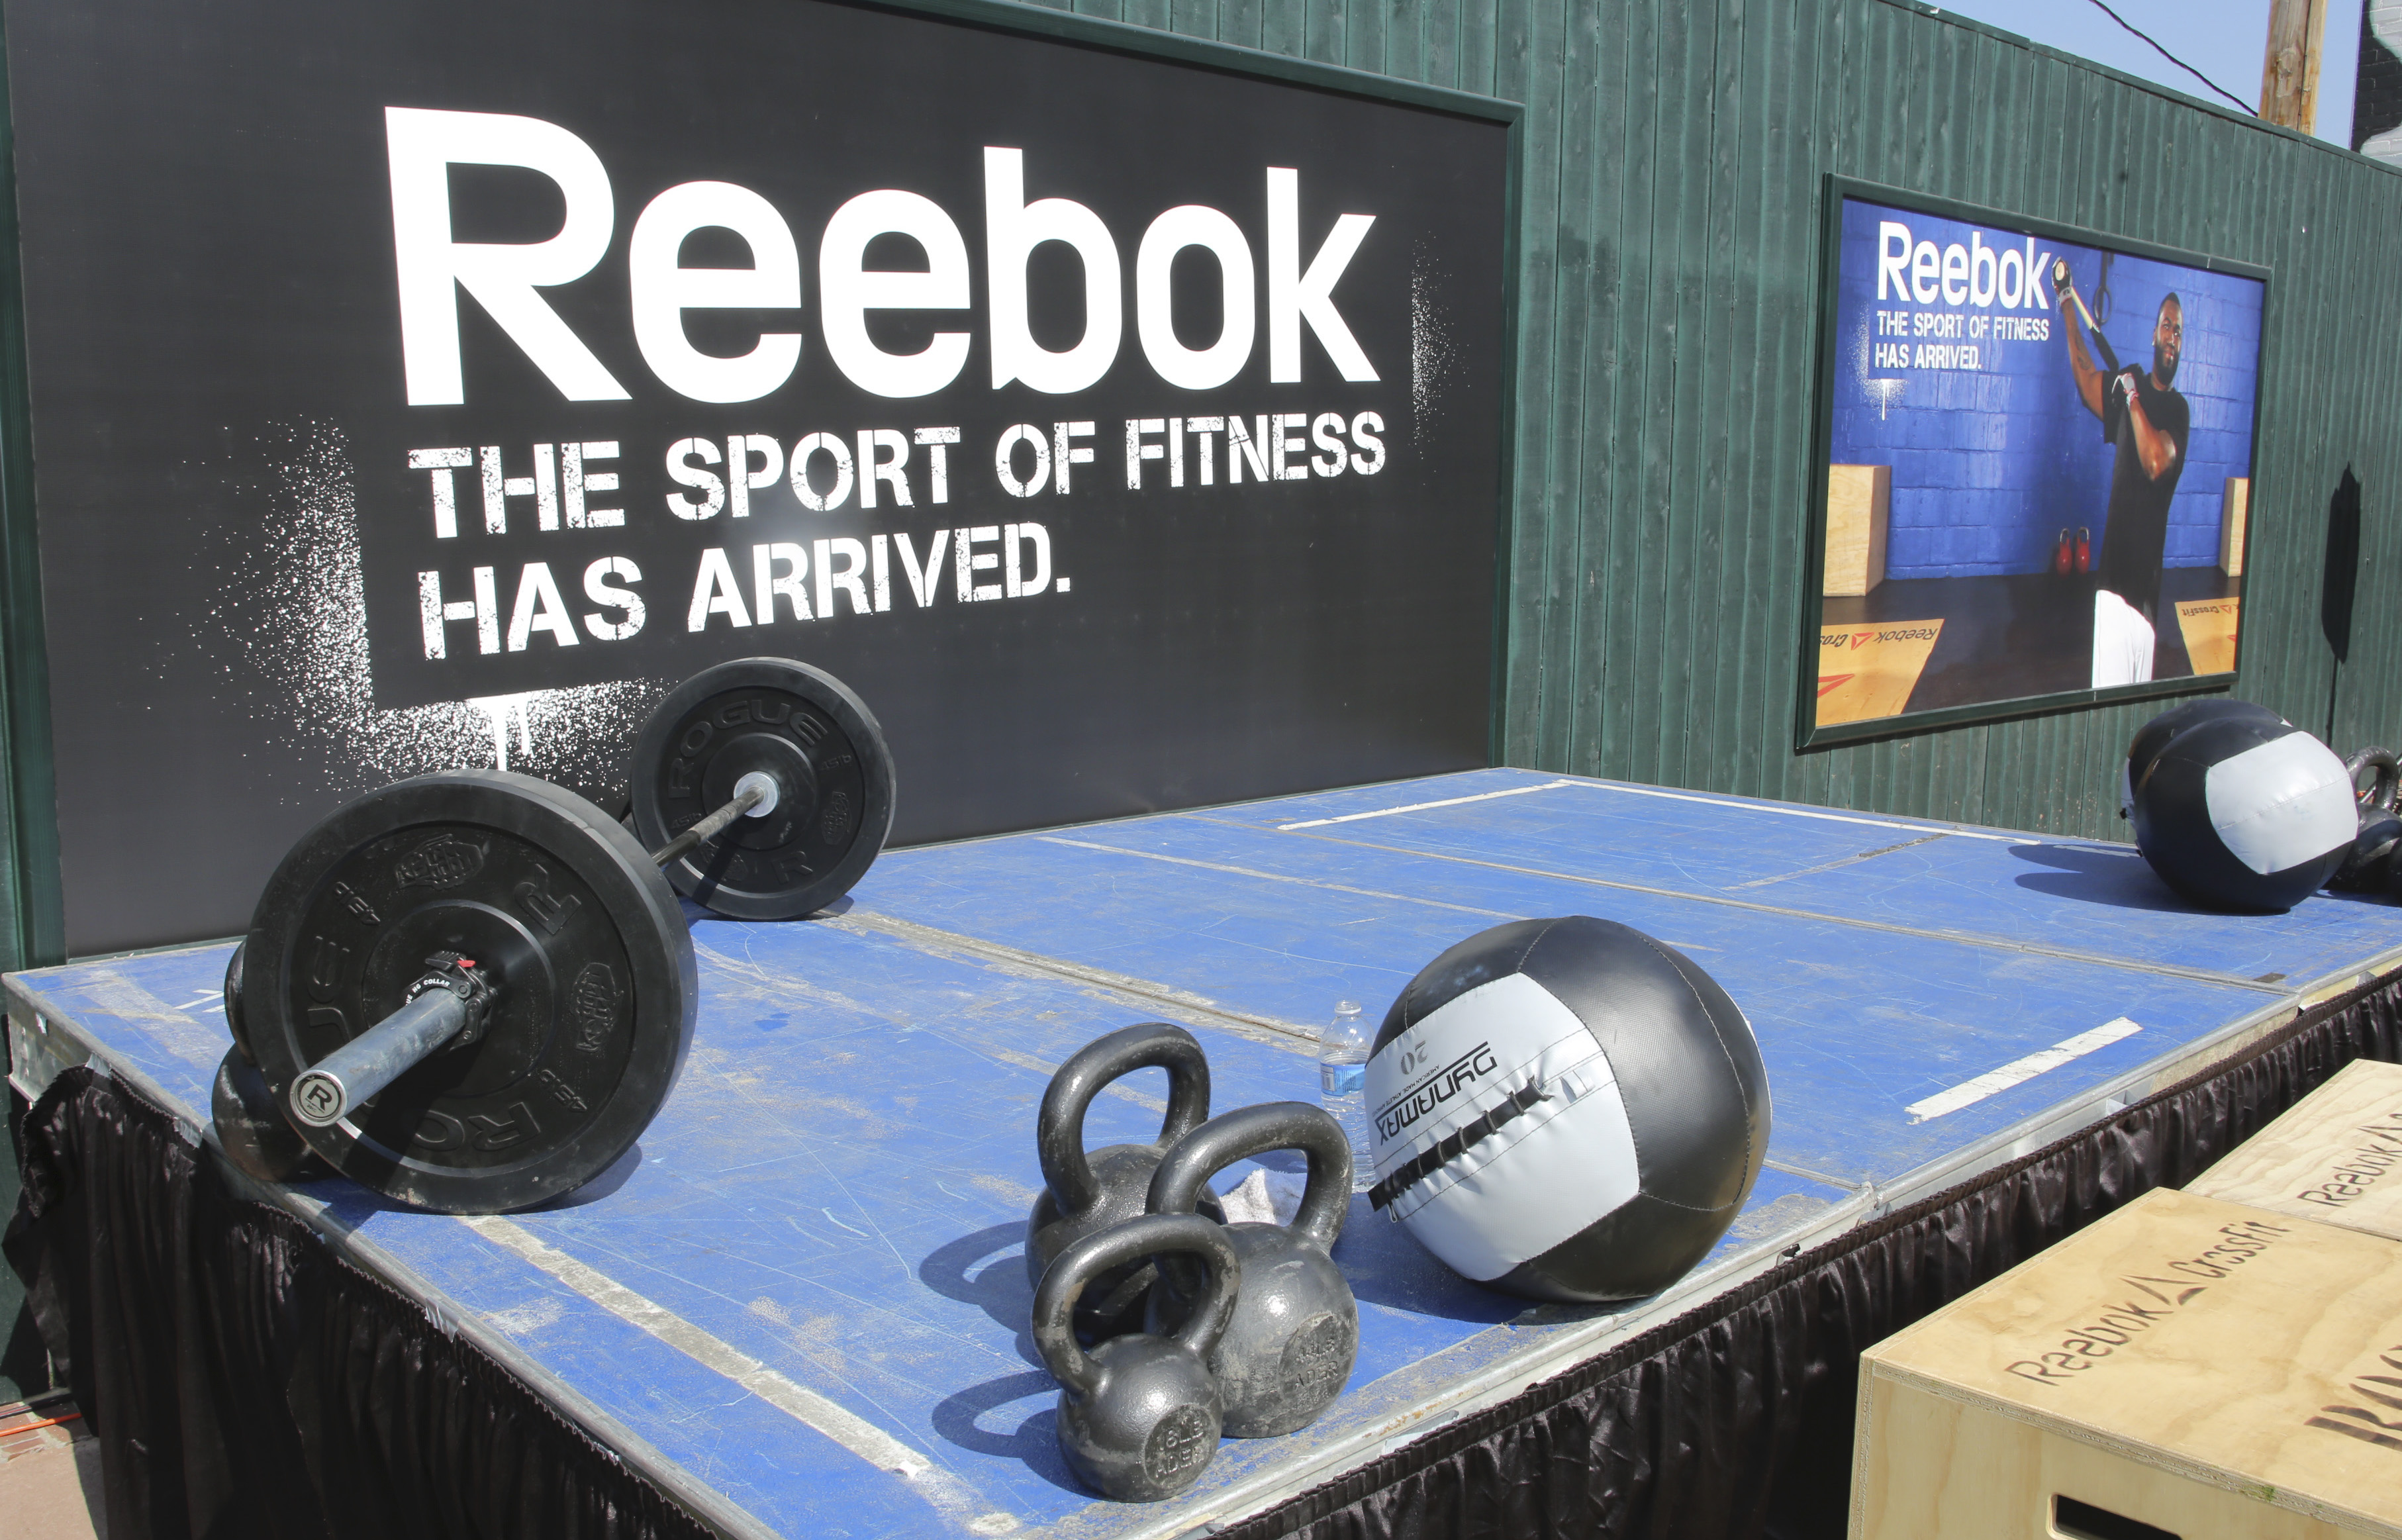 CrossFit CEO apologizes after Reebok